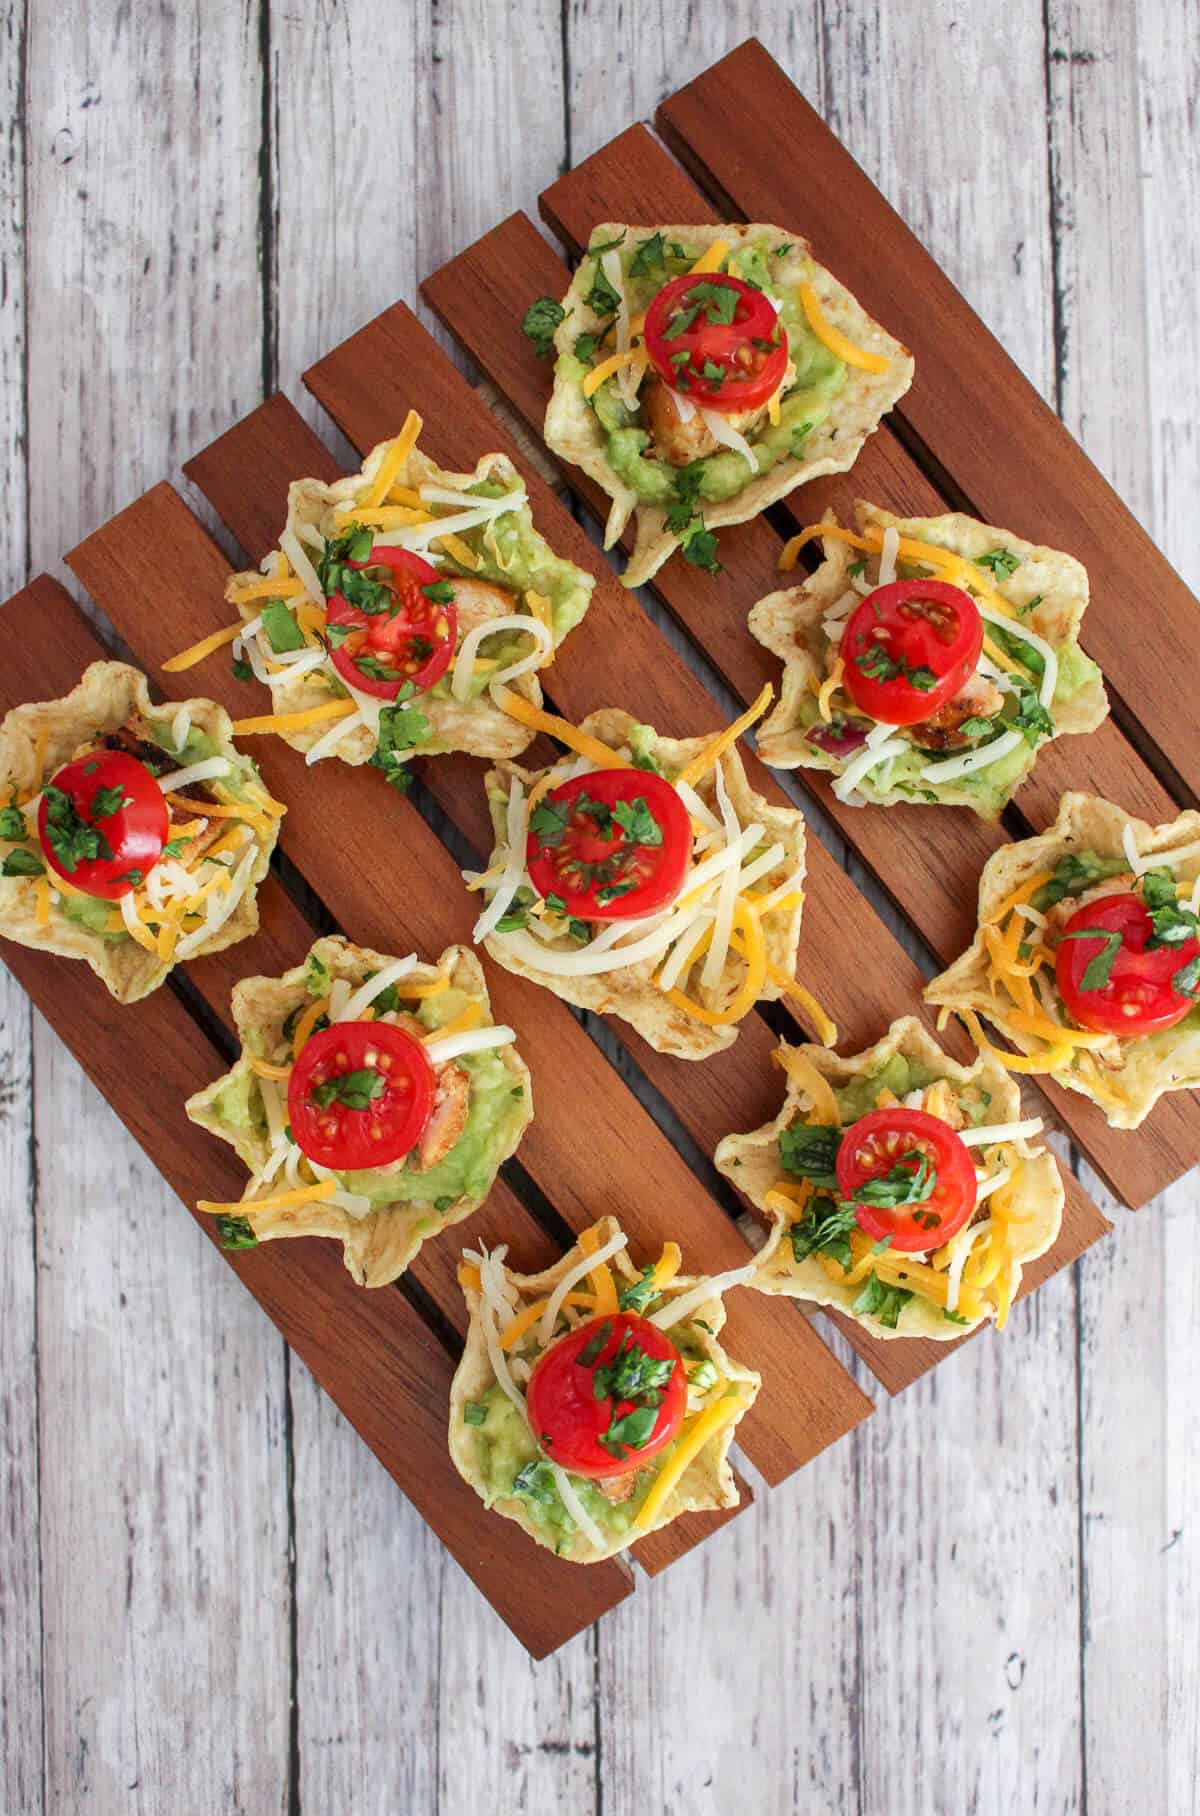 tostito 'scoop' tortilla chips filled with chicken, guacamole, cheese and tomato